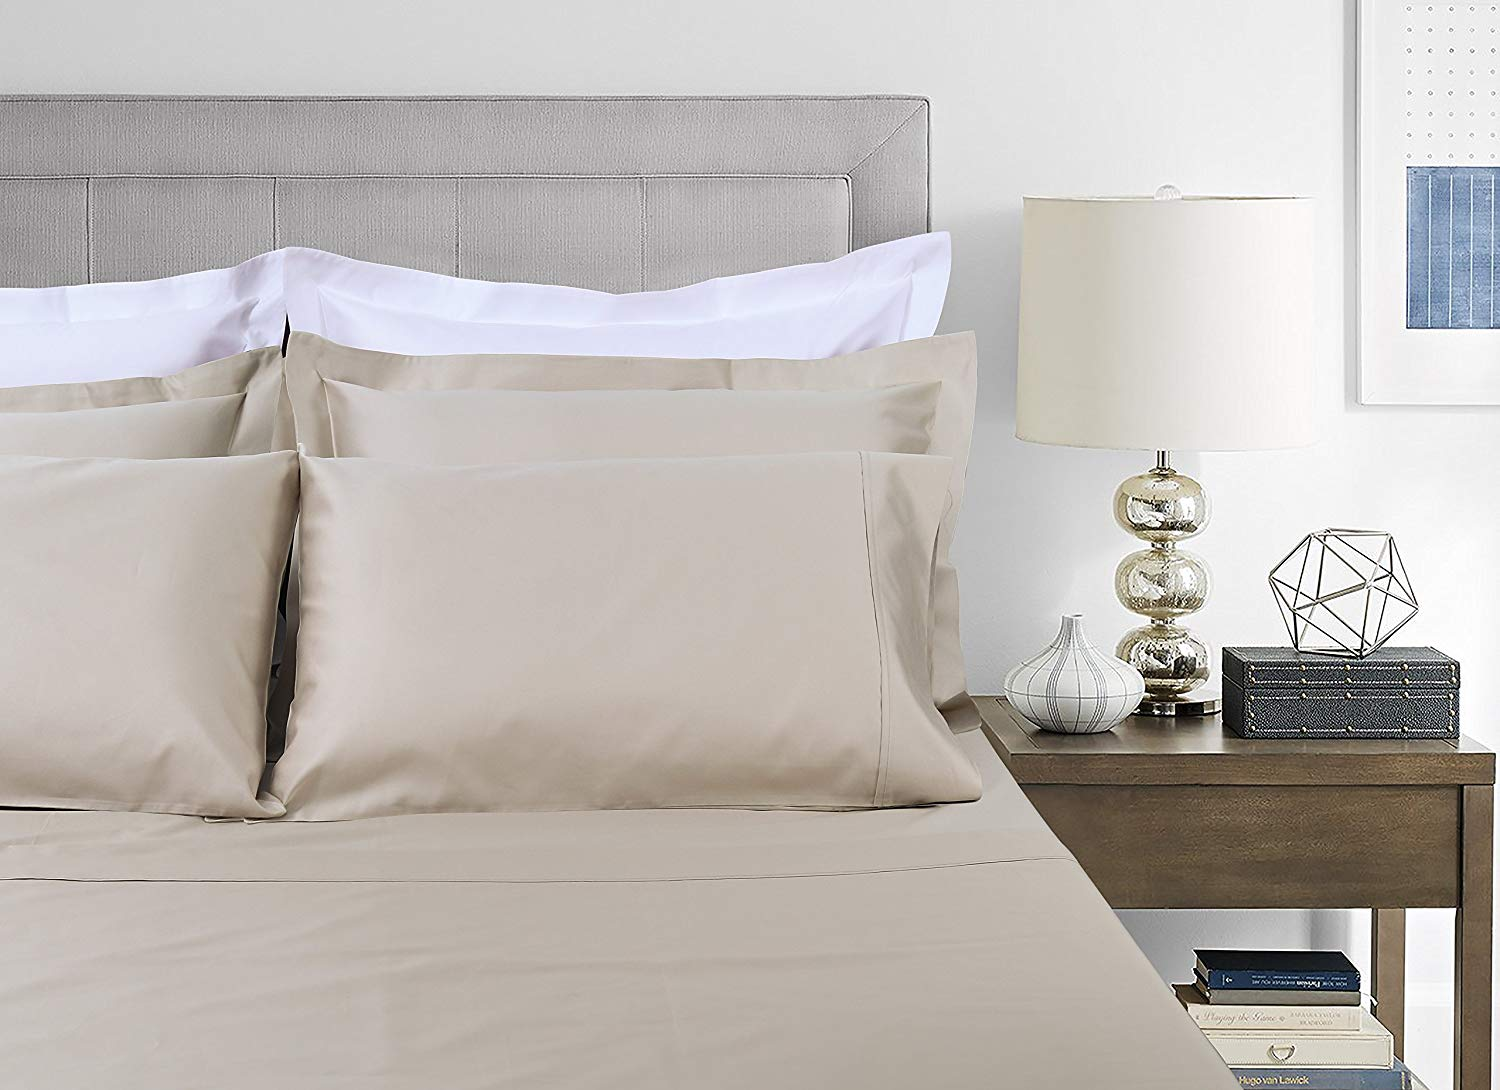 ThreadMill 800 Thread Count Sheets - High Thread Count Sheets